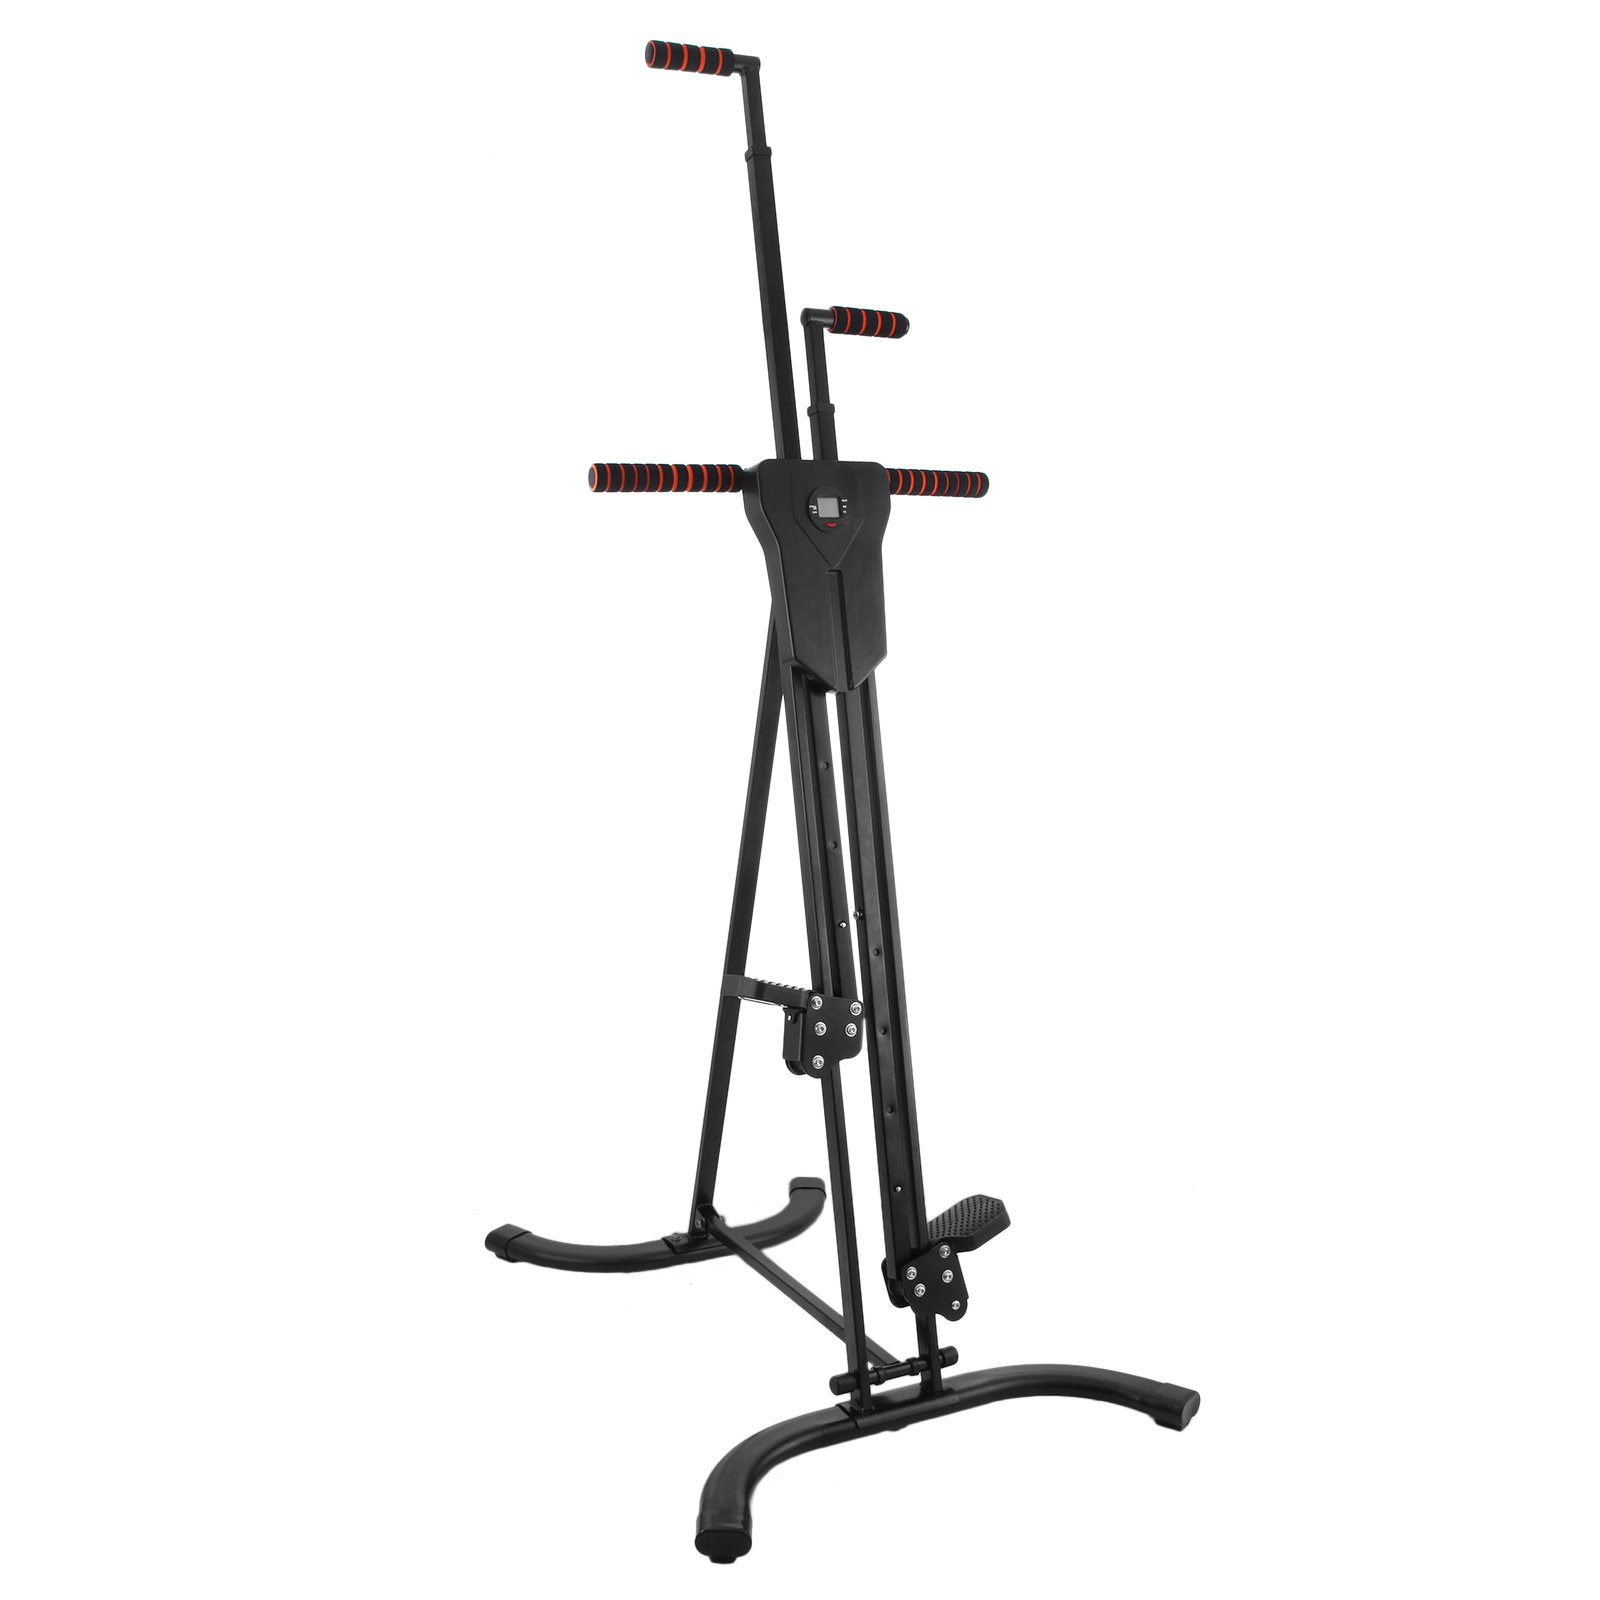 Popsport 440LBS Climber Machine Fitness Stepper Climber Exercise Equipment Vertical Climber for Home Gym Exercise Stepper Cardio Climbing System (P8008,Black) by Popsport (Image #1)